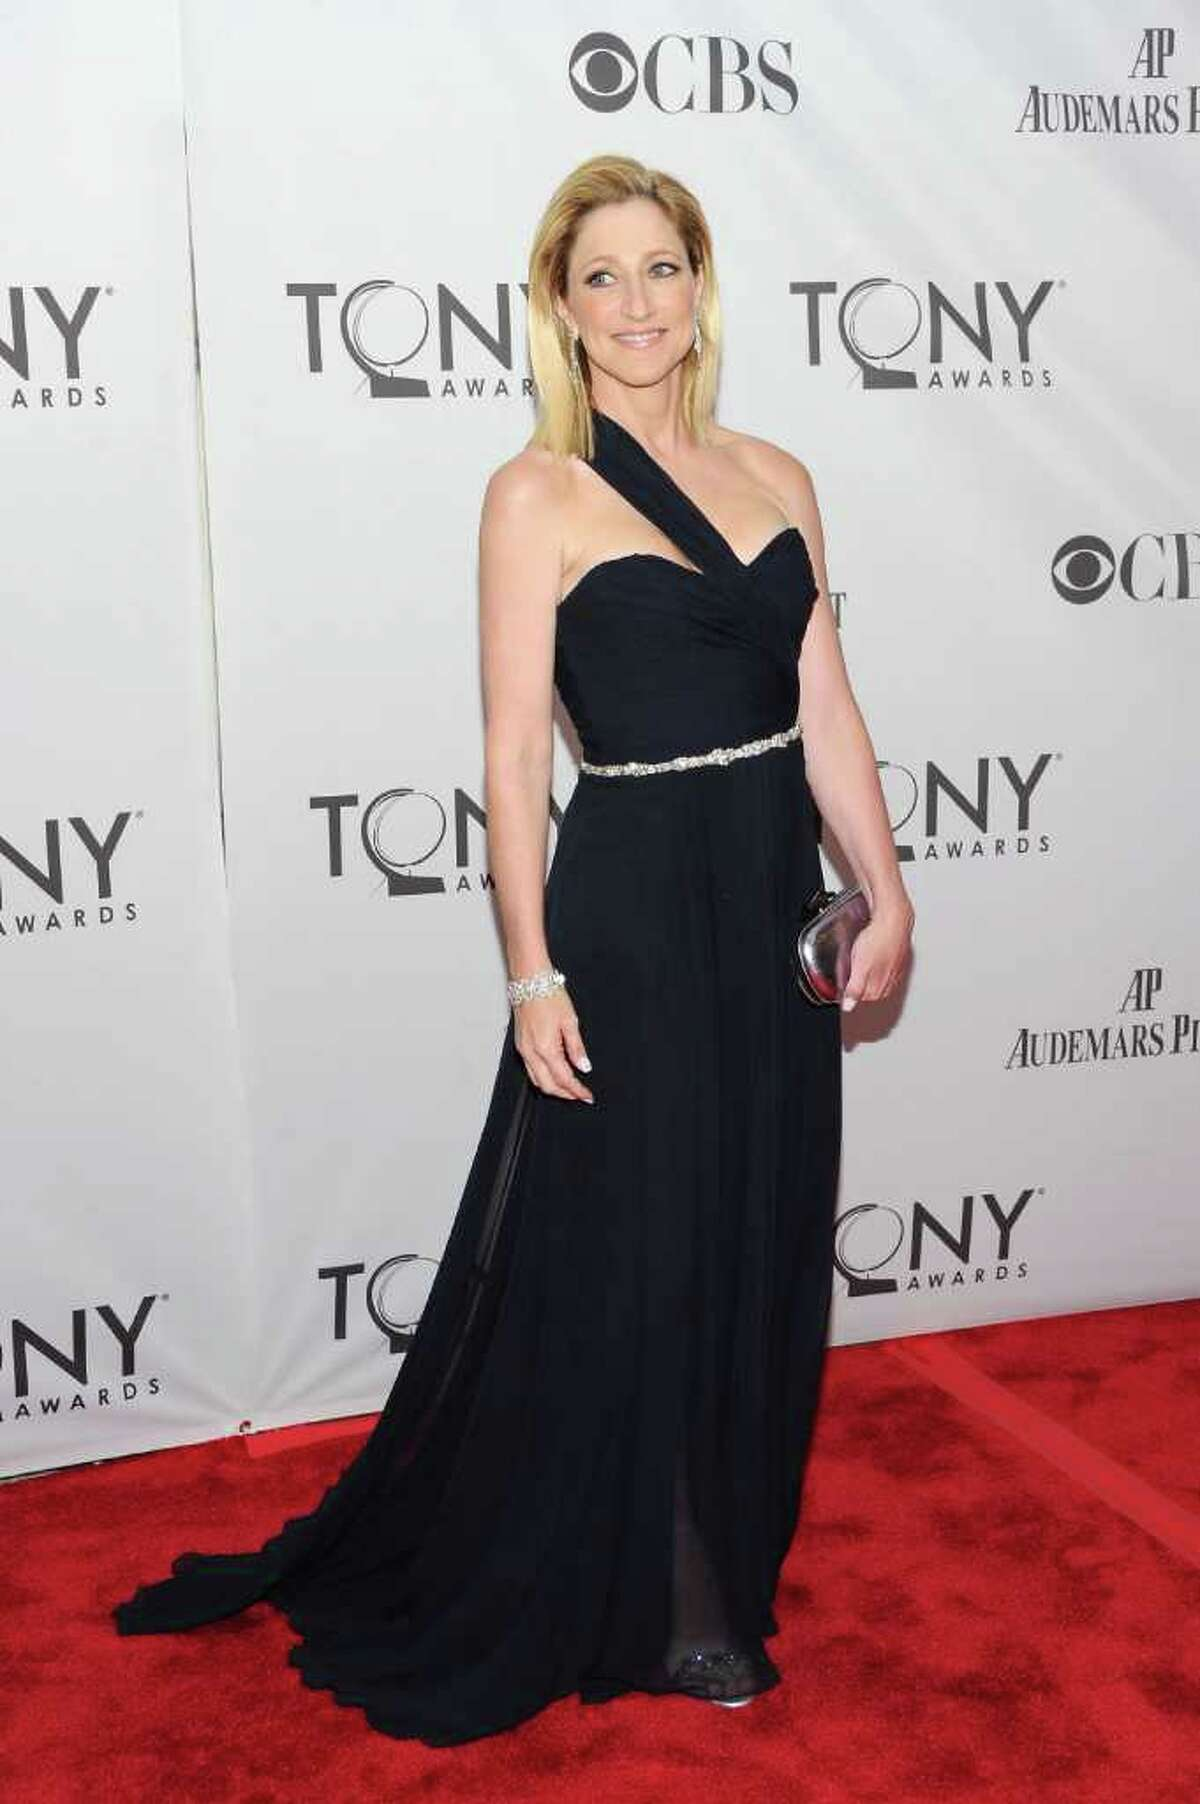 Edie Falco attends the 65th annual Tony Awards at the Beacon Theatre in New York on Sunday, June 12, 2011.